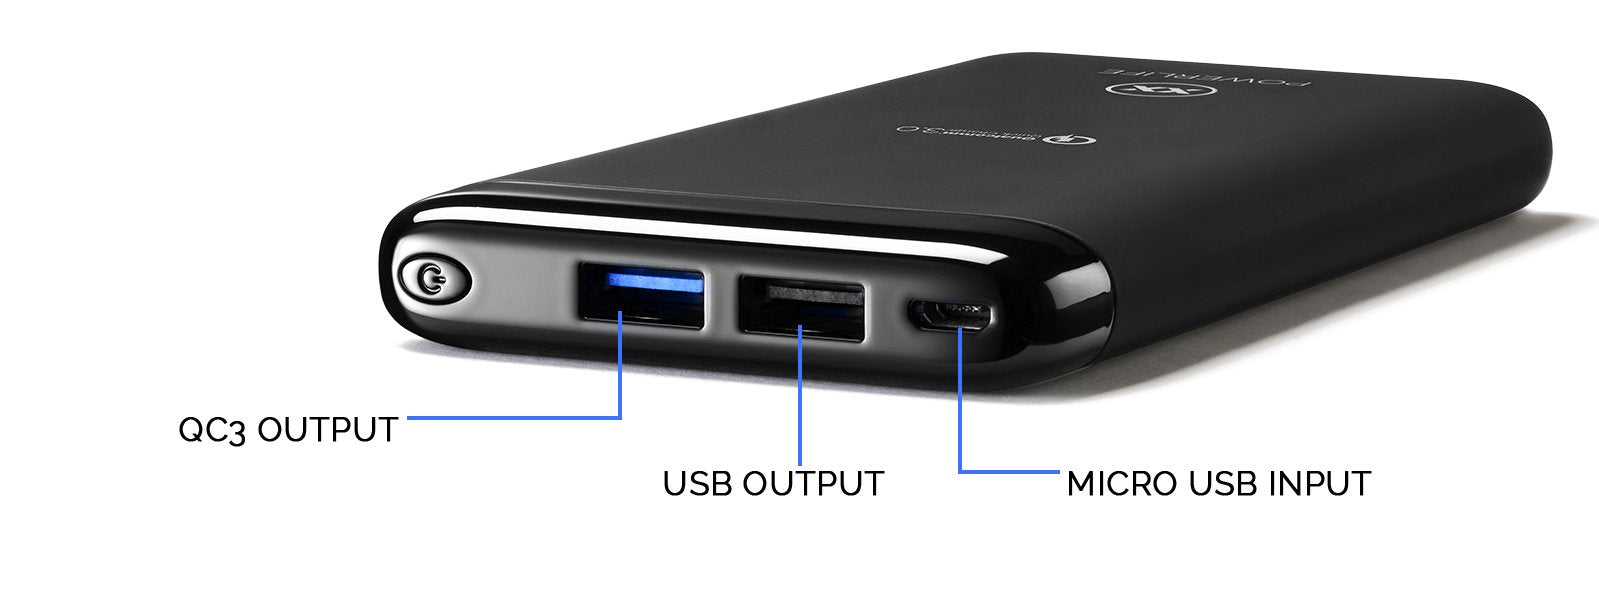 C10 power bank ports